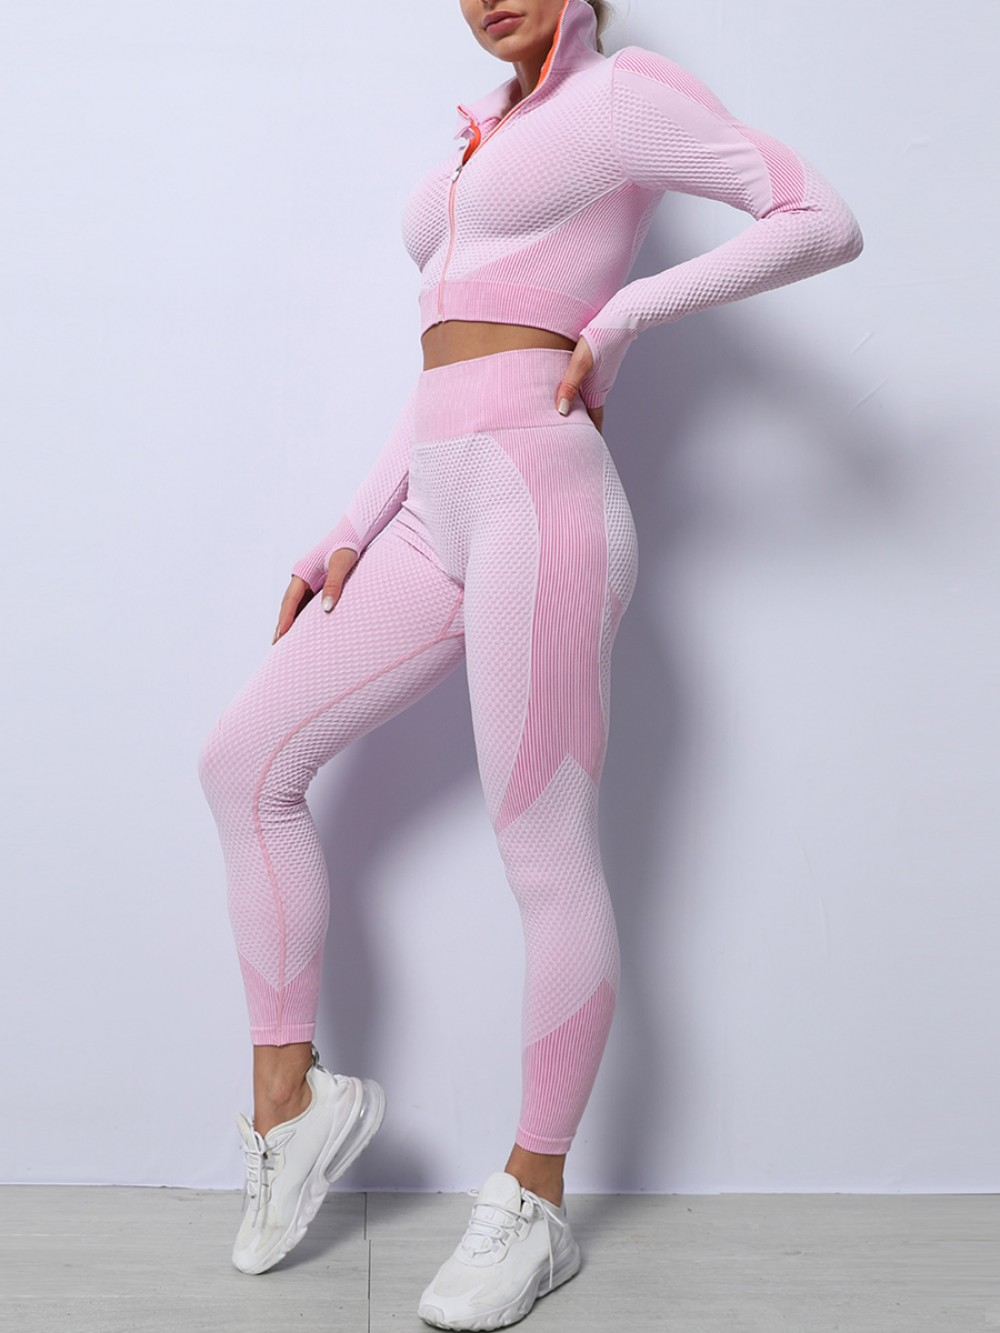 Light Pink High Waist Yoga Suit Colorblock With Thumbhole Sports Series